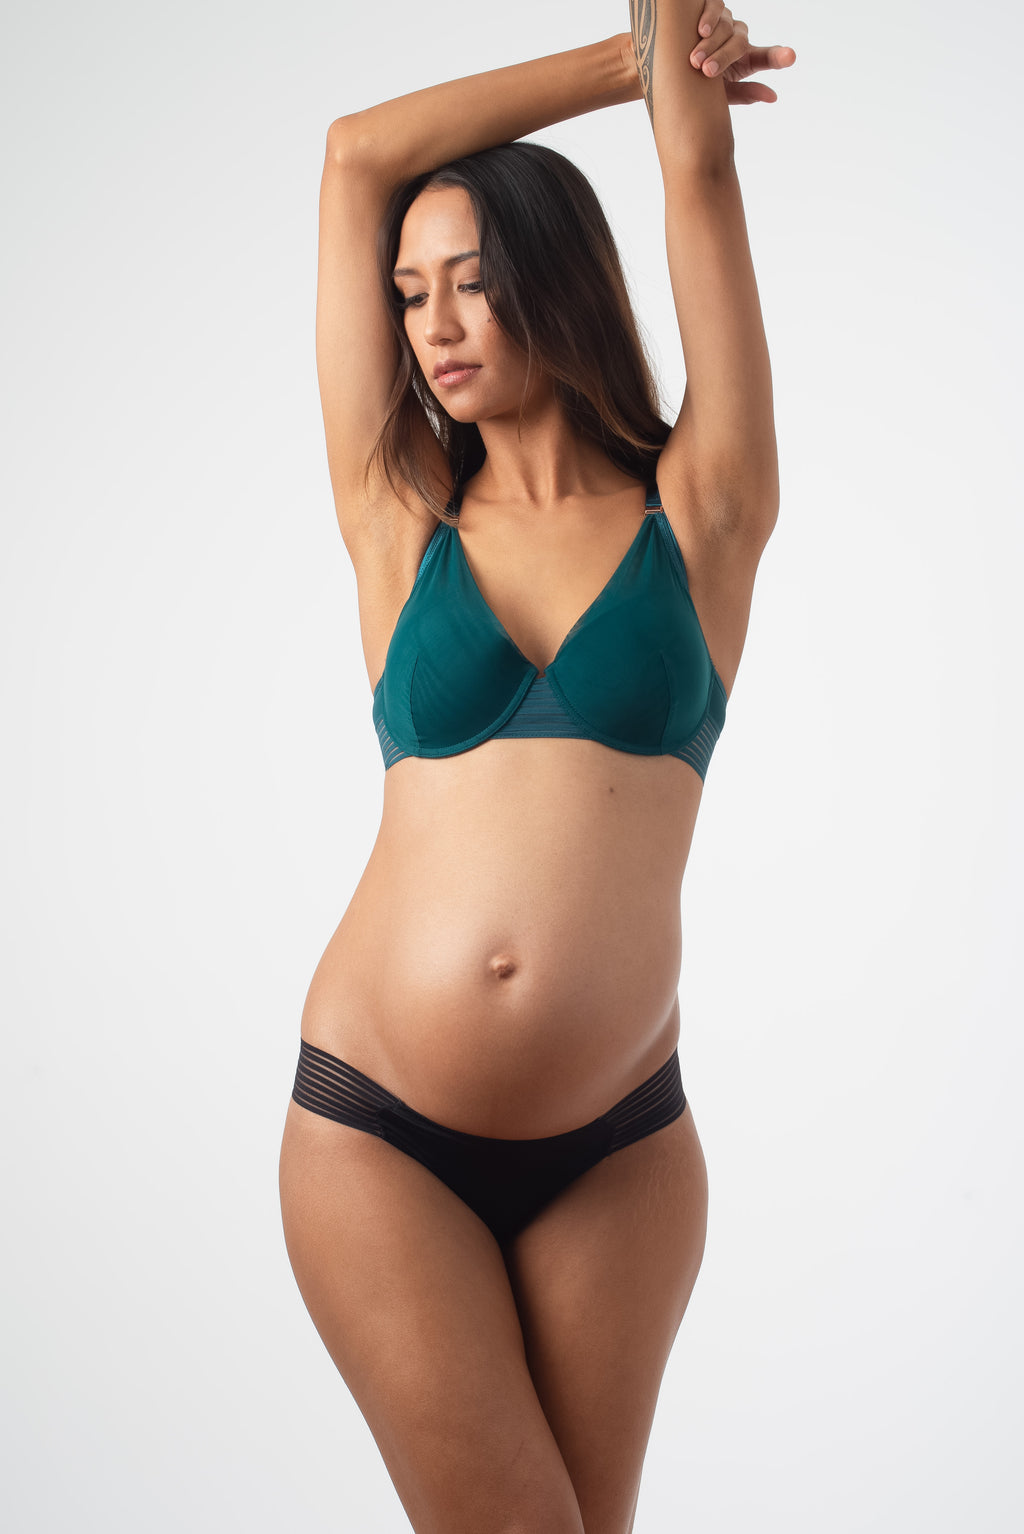 HOTMILK PROJECTME AMBITION PLUNGE DARK GREEN CONTOUR NURSING FEEDING PREGNANCY BRA - FLEXI UNDERWIRE